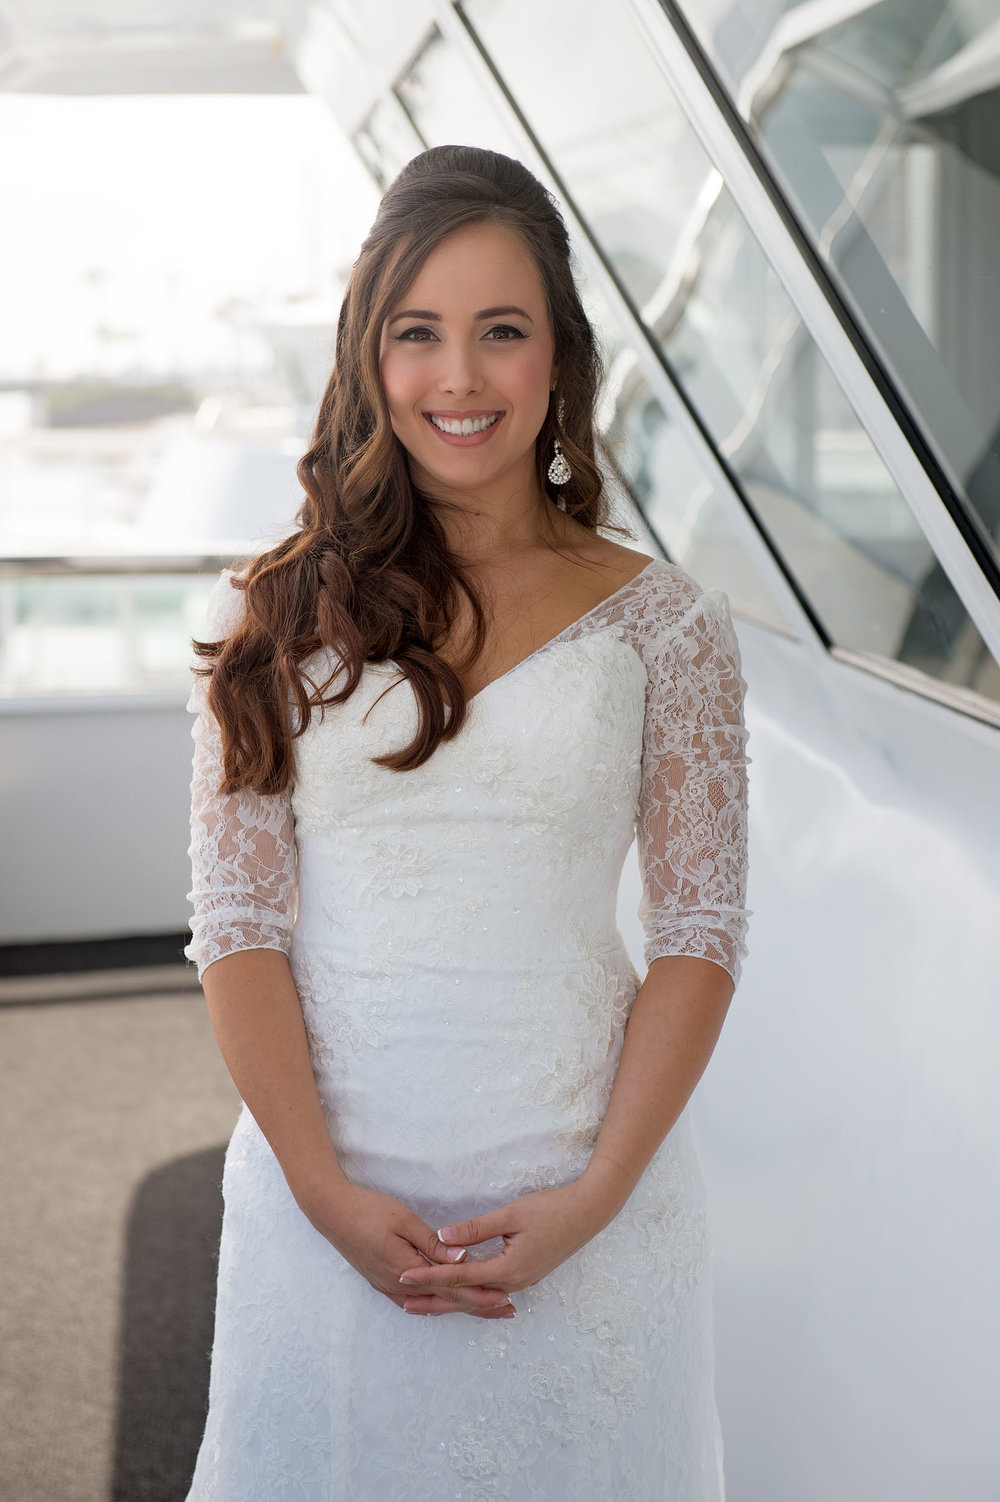 Bride on an Electra Cruises ship deck in Newport Beach.